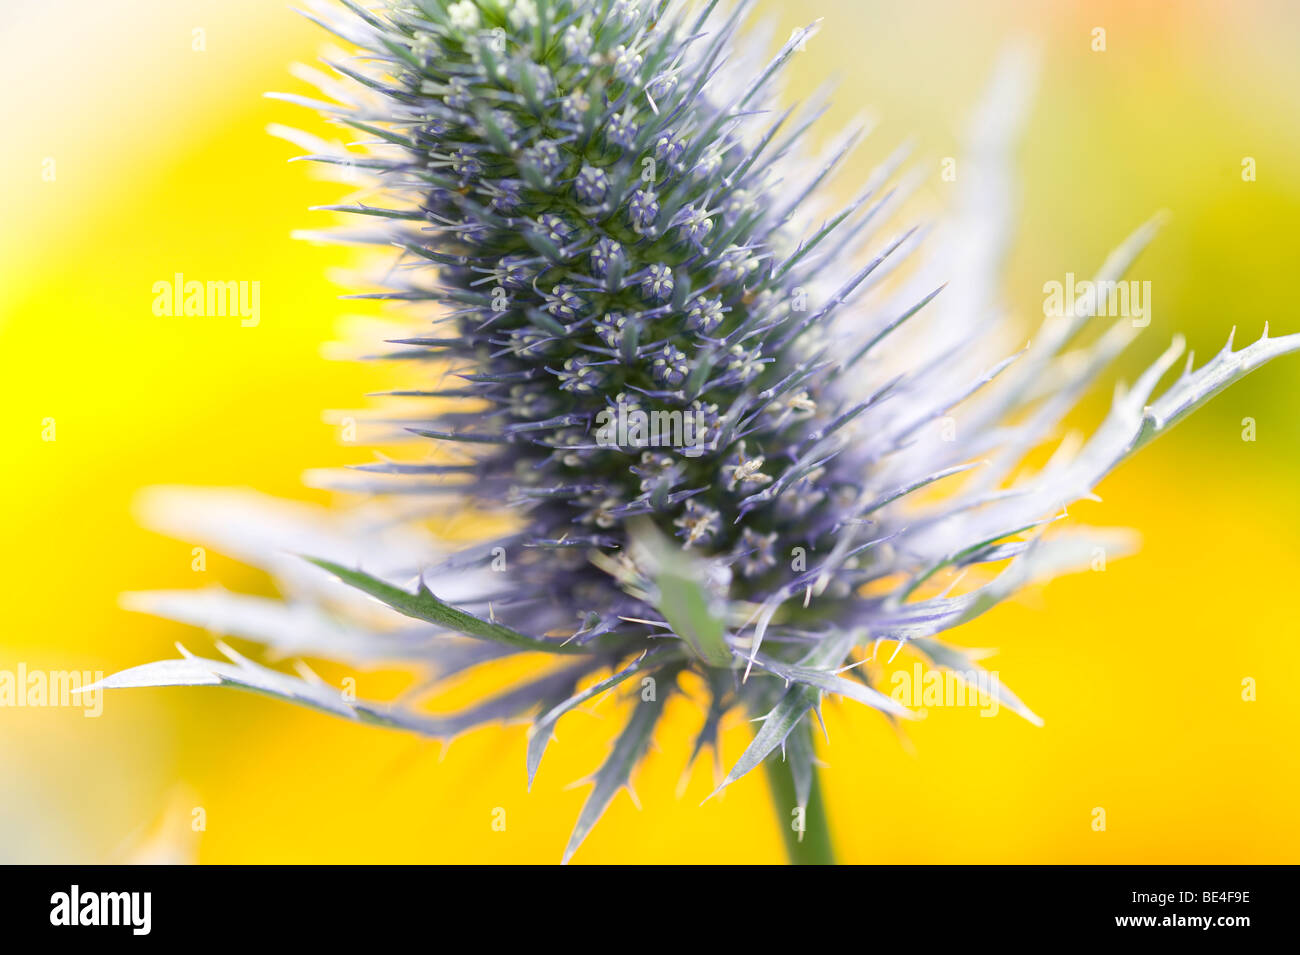 close up of sea holly thistle type plant - Stock Image